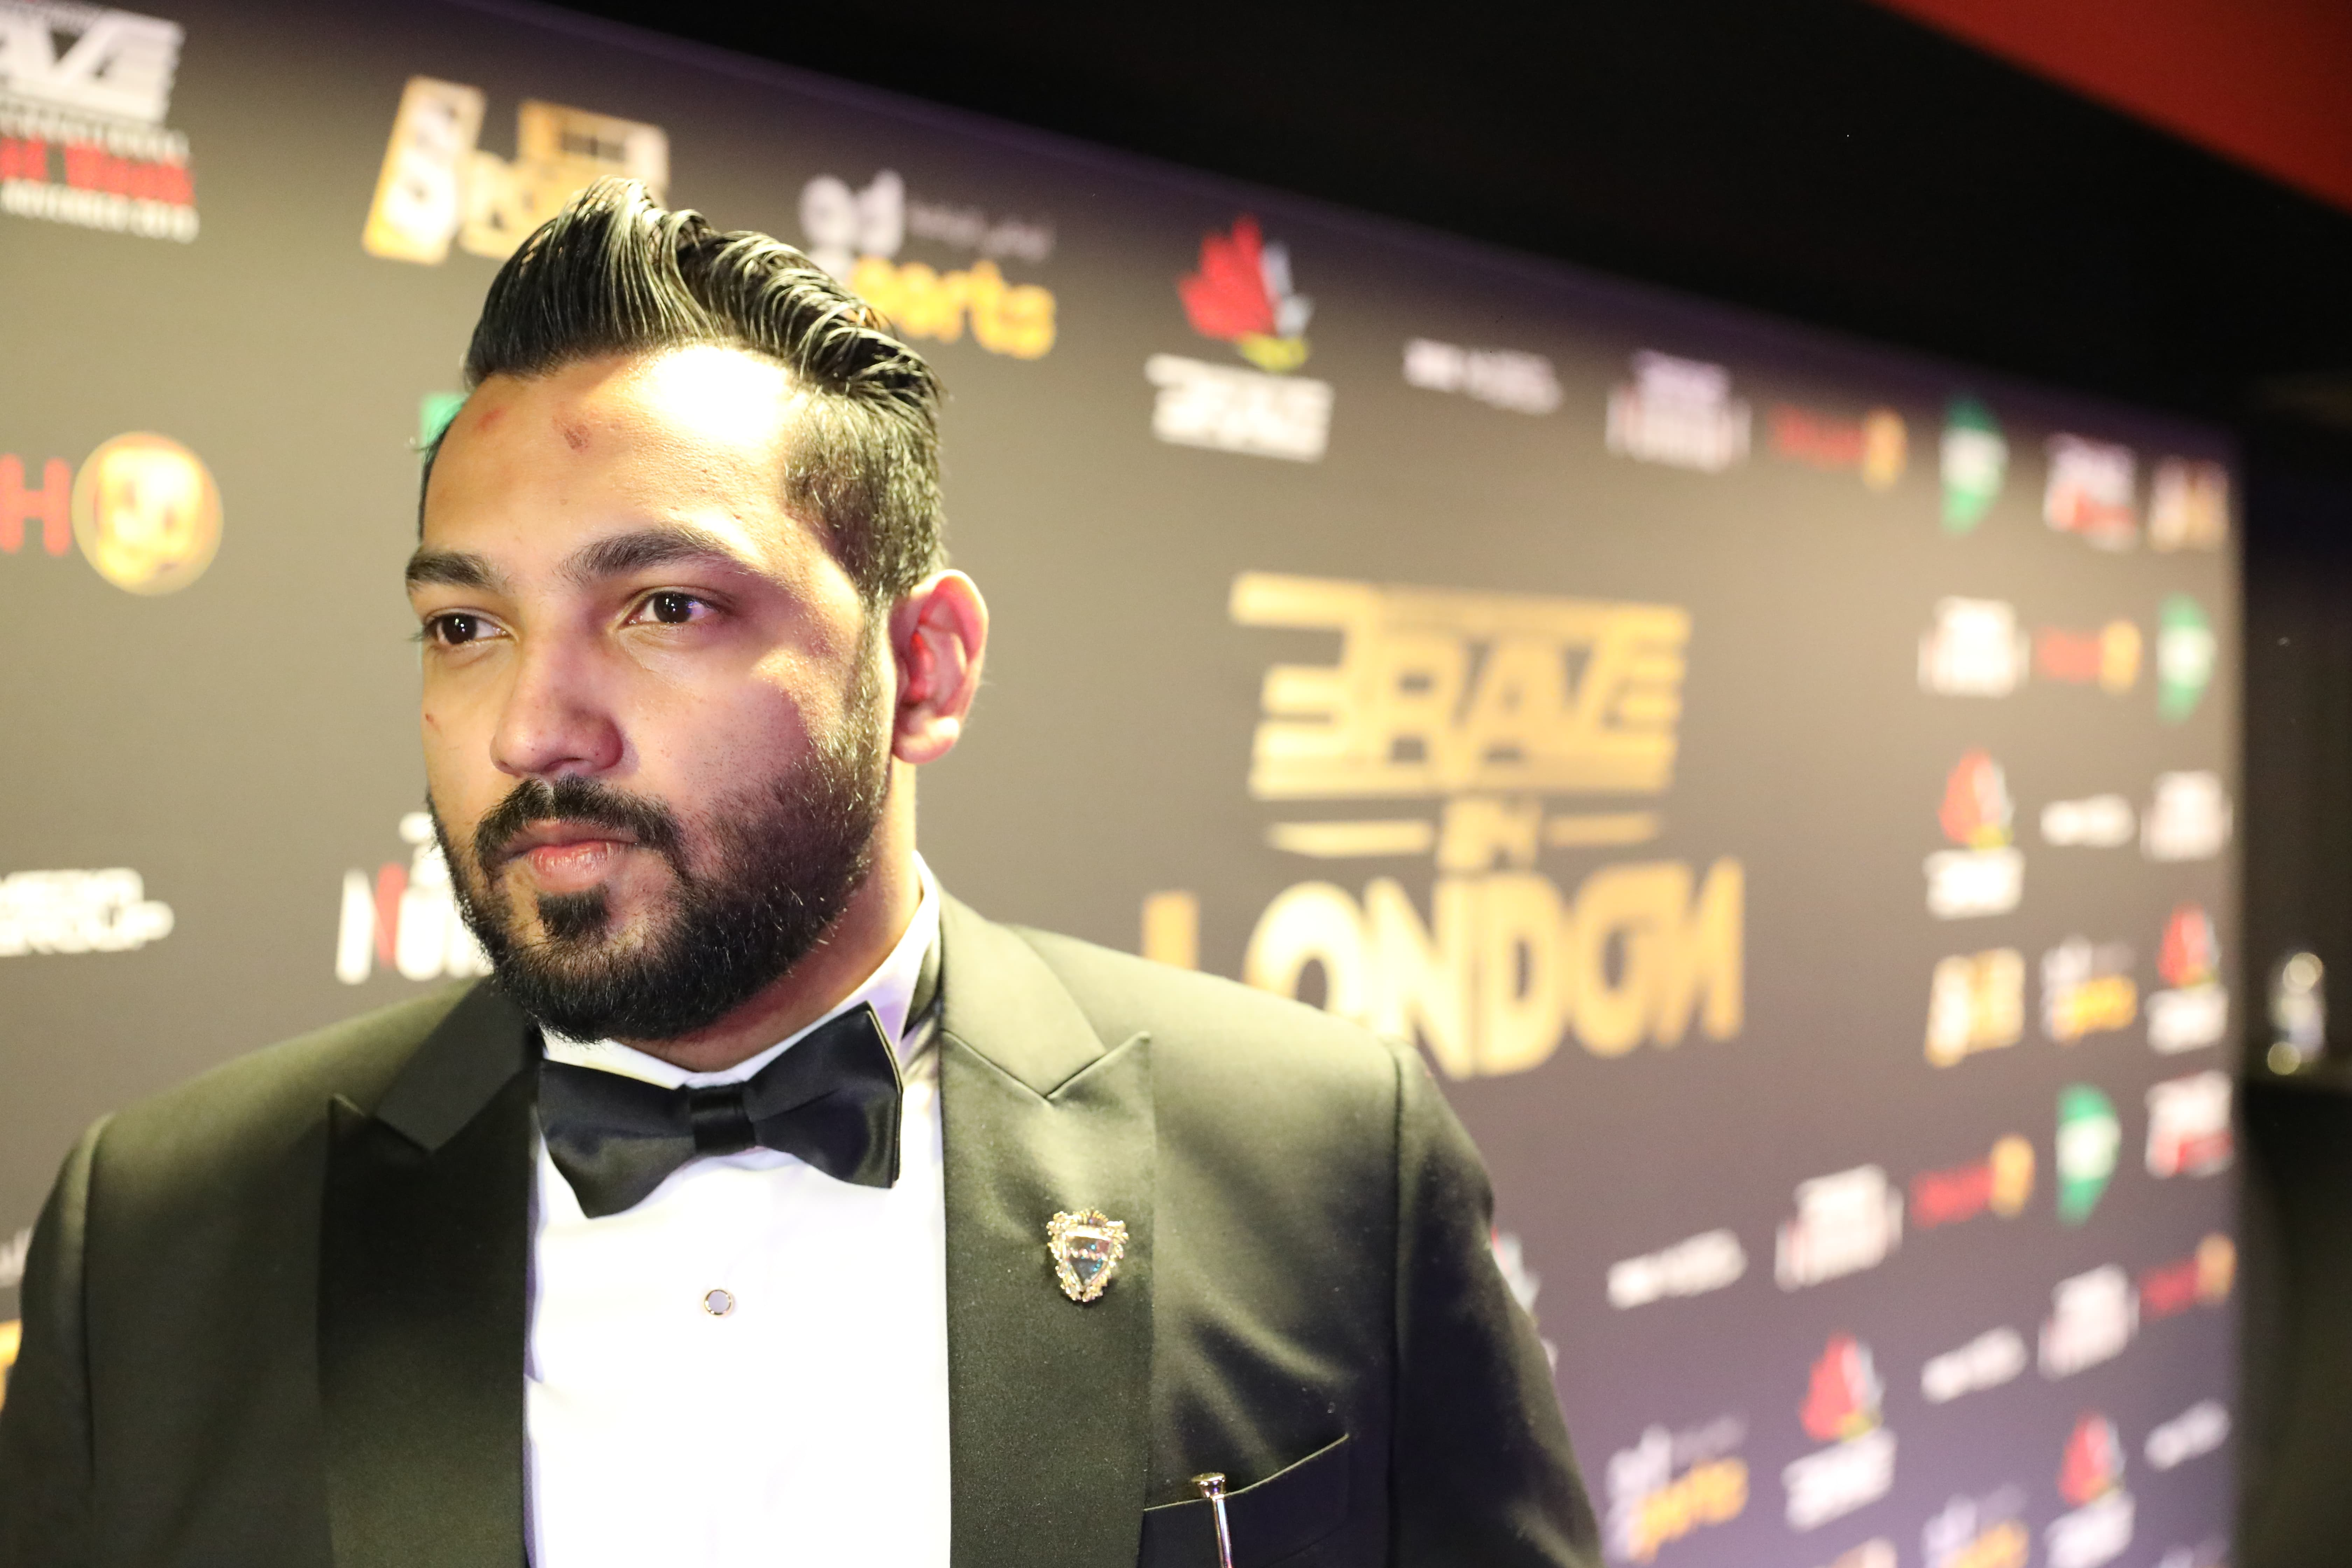 BRAVE president Mohammed Shahid reflects on a historical night in London -